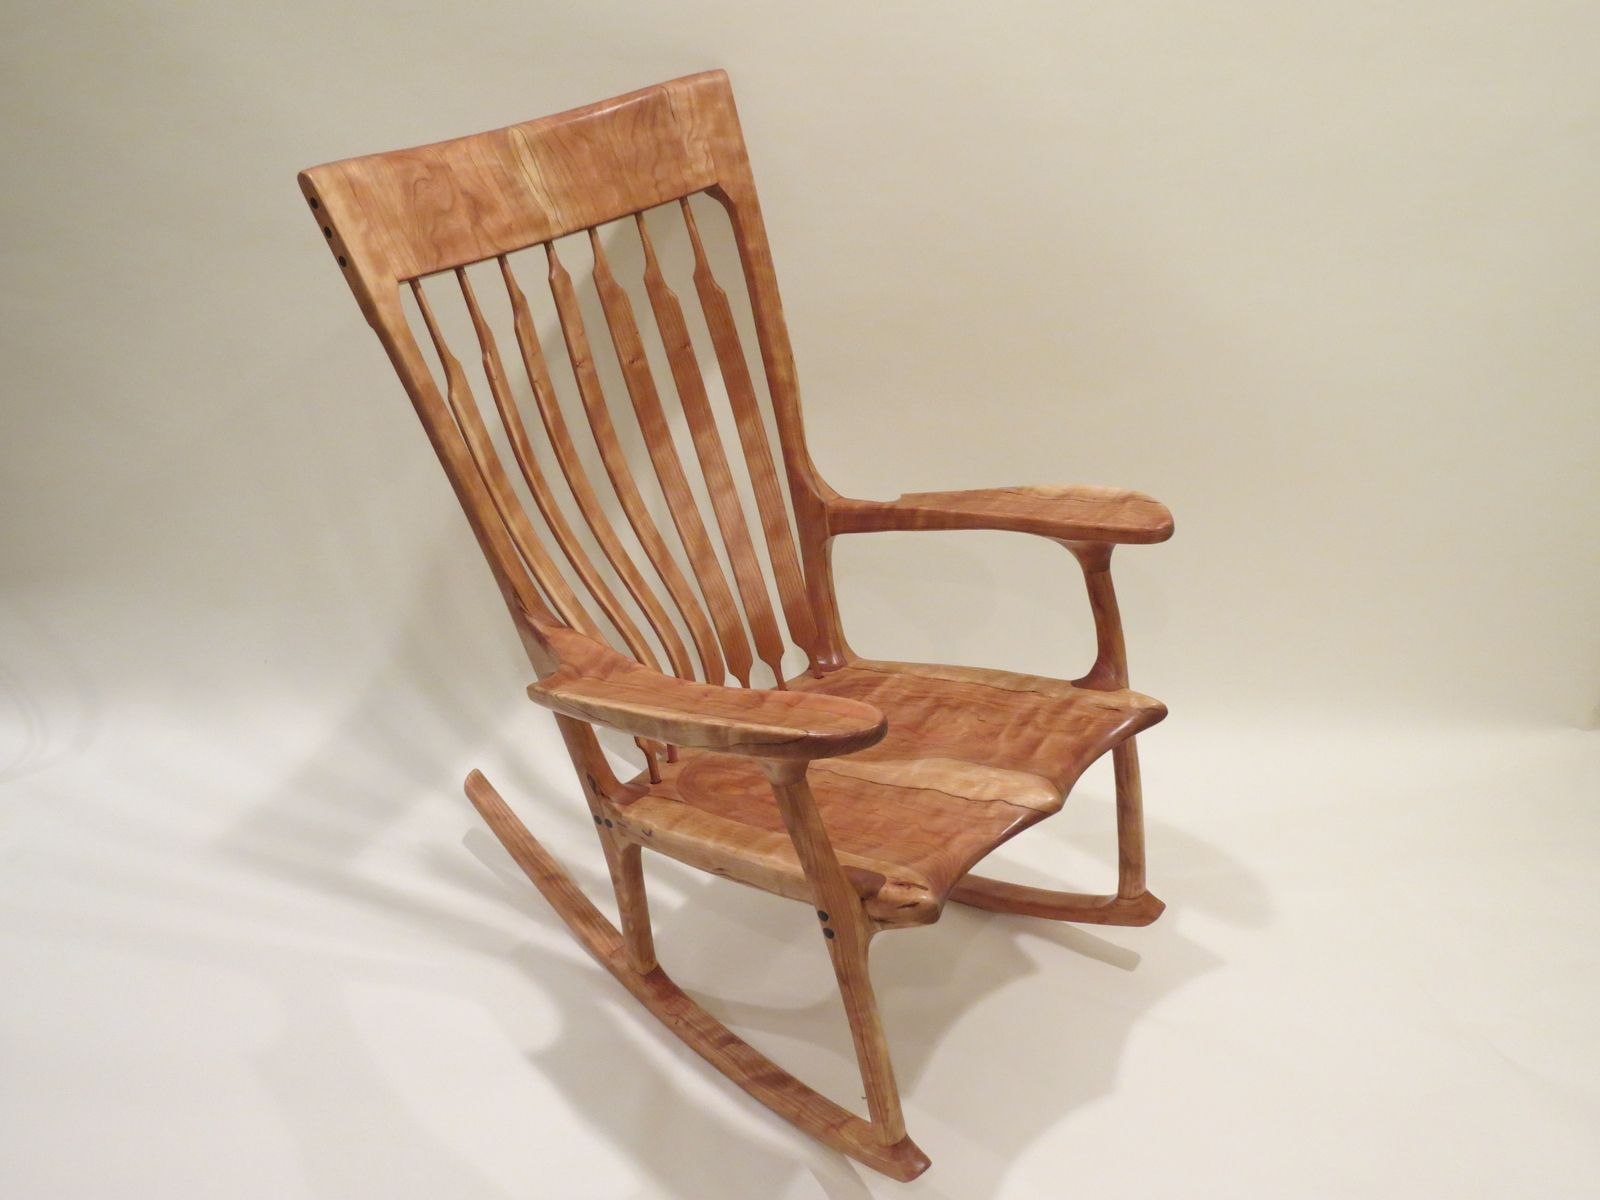 Buy a Custom Sculpted Rocking Chair made to order from Lost Creek